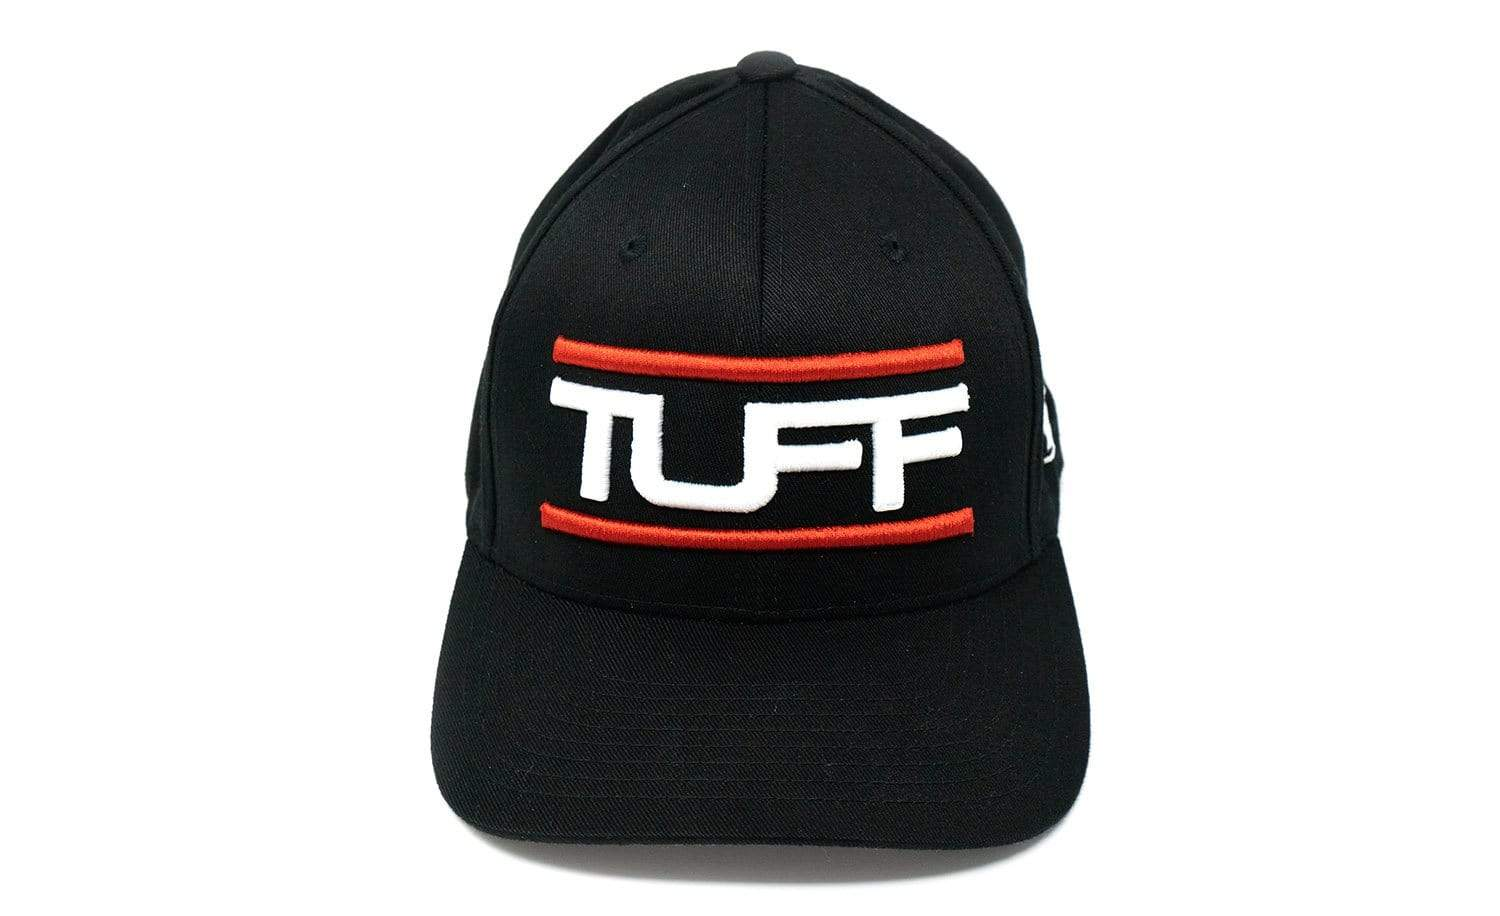 TUFF Bar'd Black/White Flexfit Hat TuffWraps.com